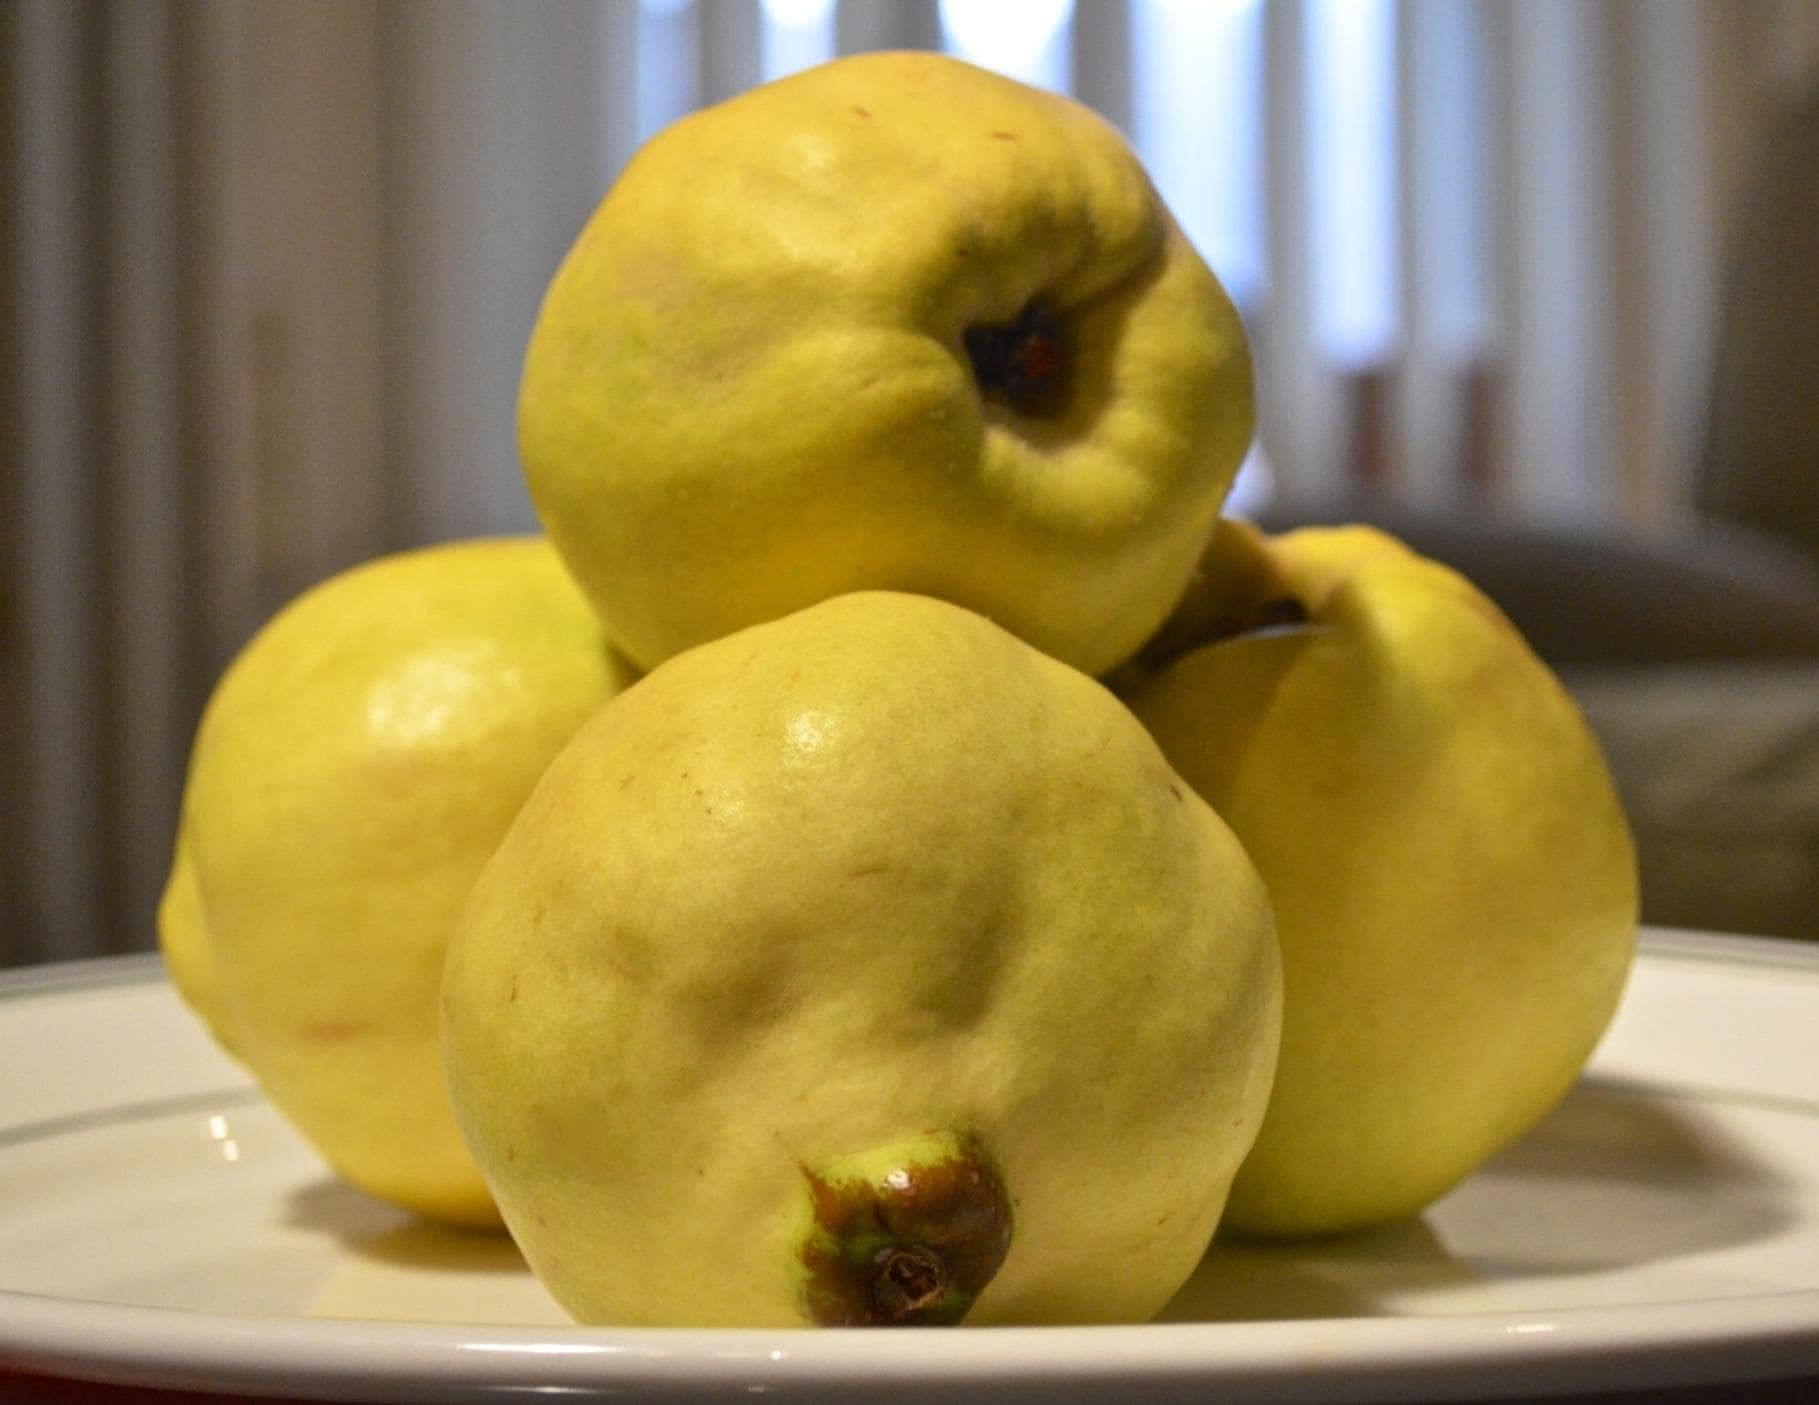 quince dream meaning, dream about quince, quince dream interpretation, seeing in a dream quince